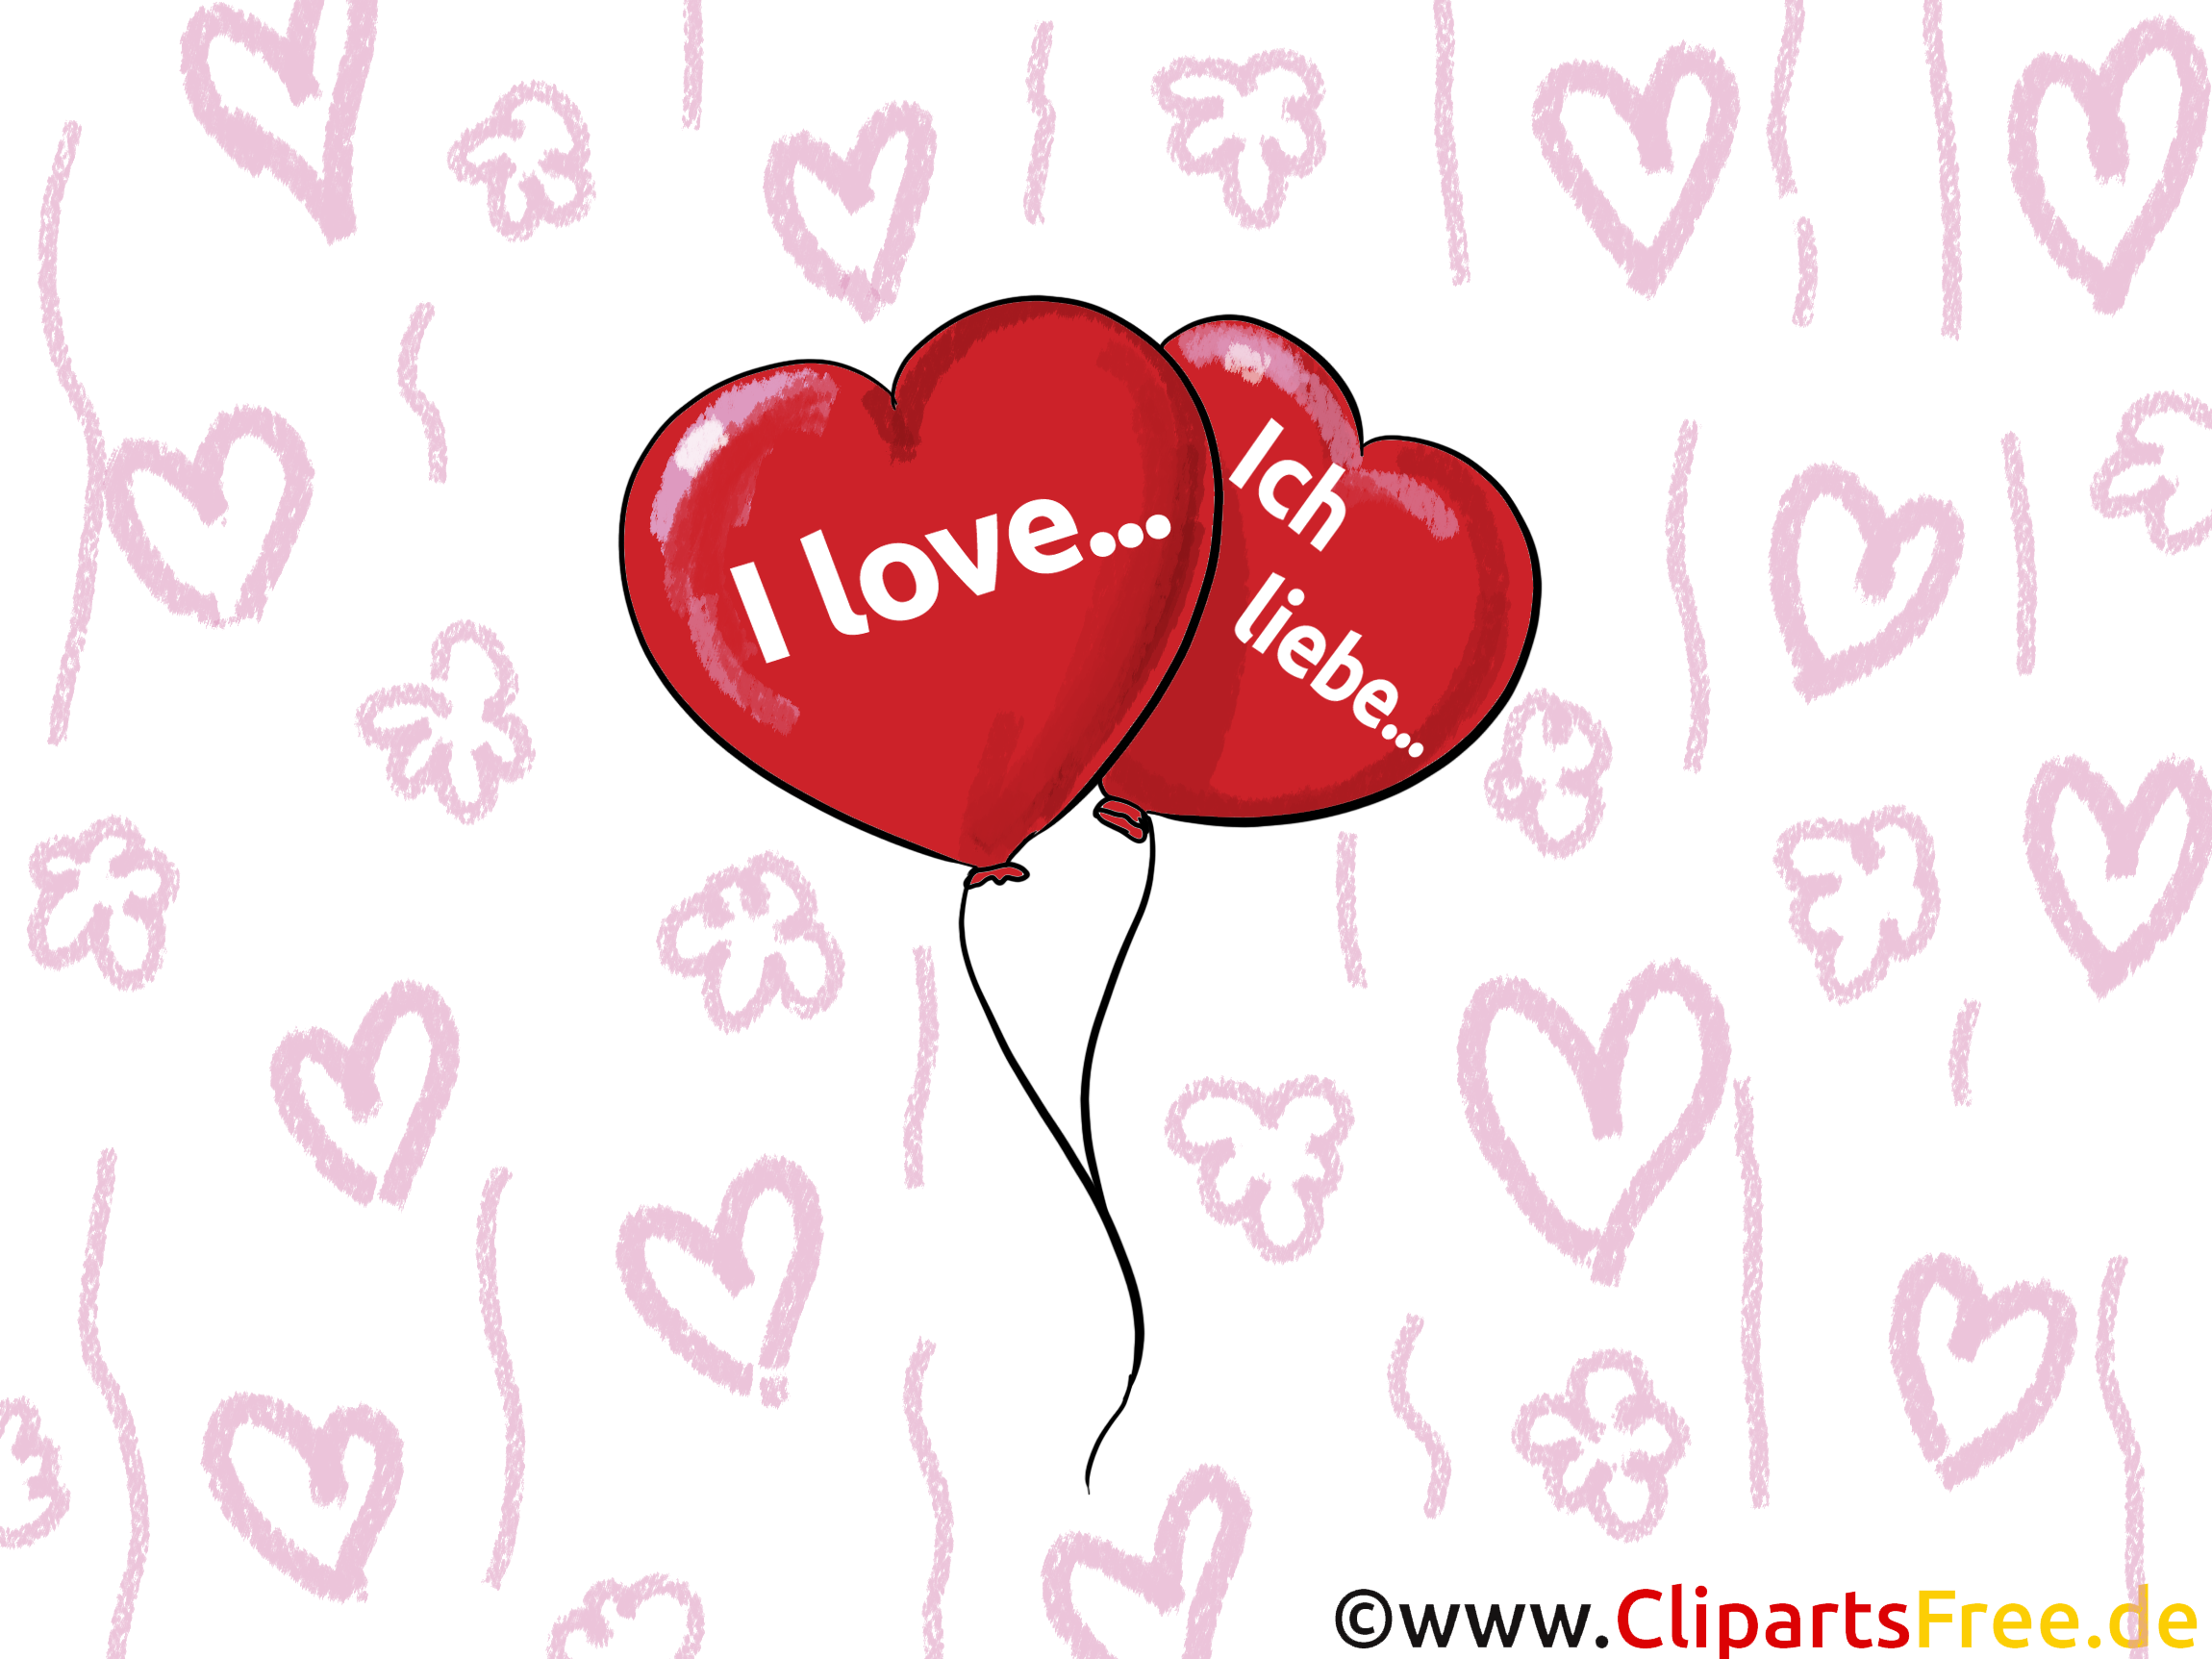 Clipart ich liebe dich picture royalty free download Ich Liebe Dich Clip Art – Clipart Free Download picture royalty free download